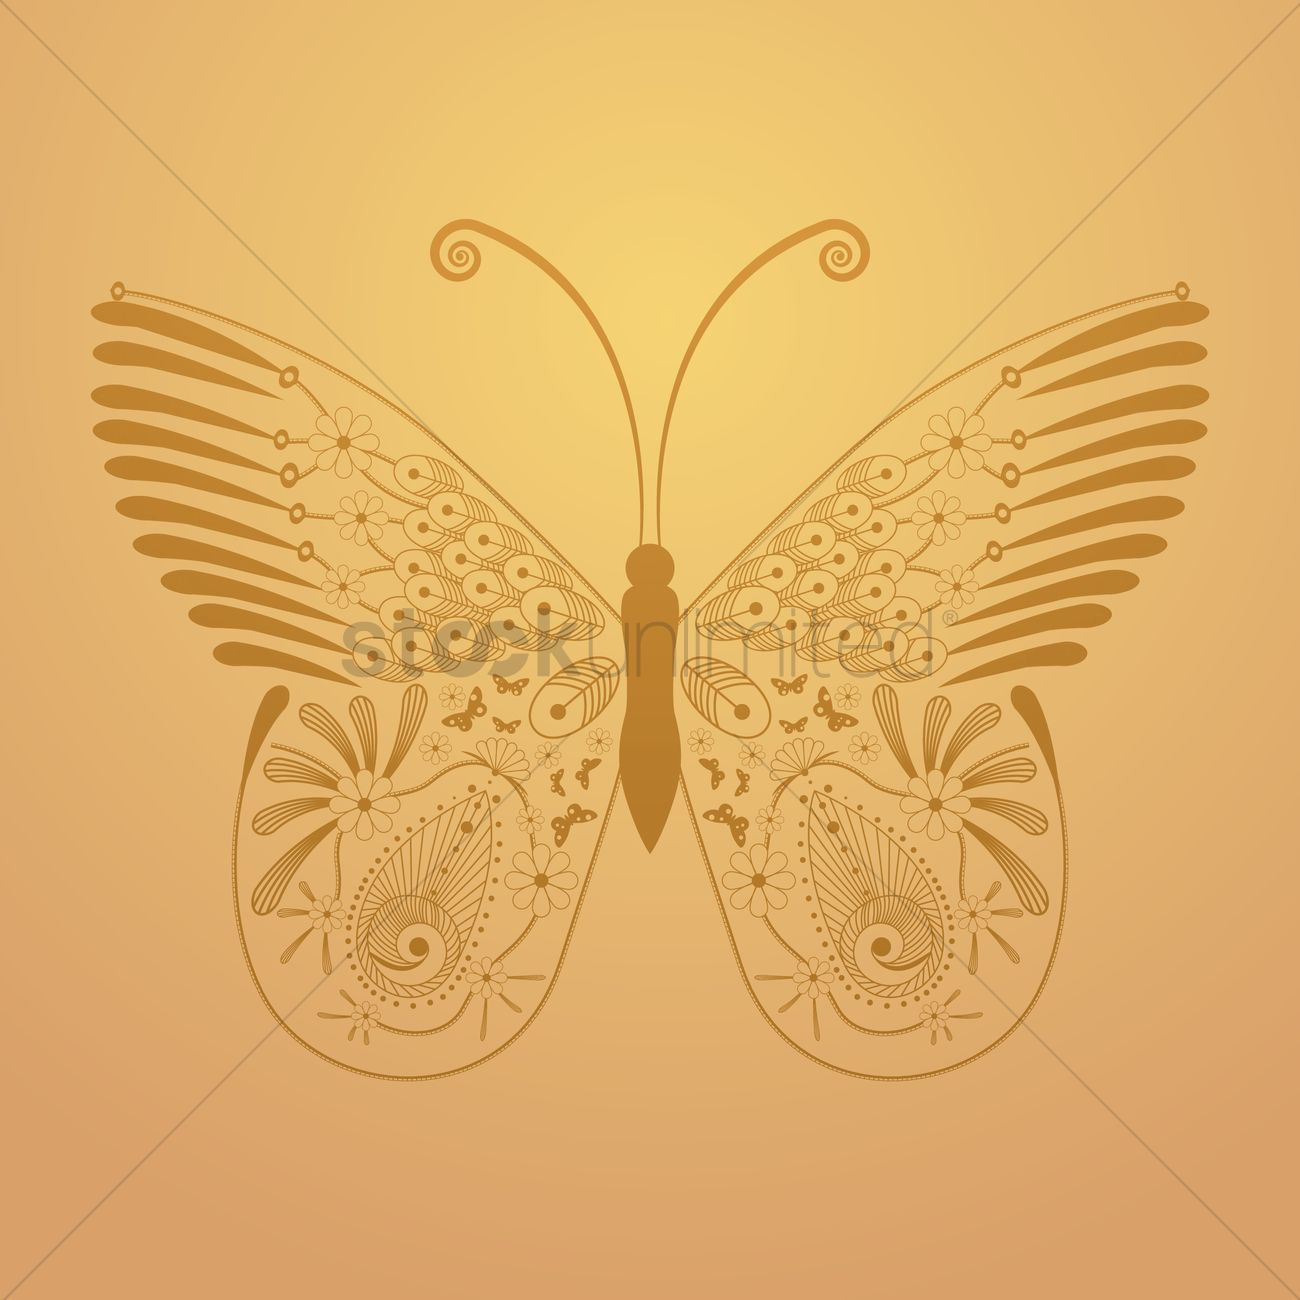 Decorative butterfly Vector Image - 1619195   StockUnlimited